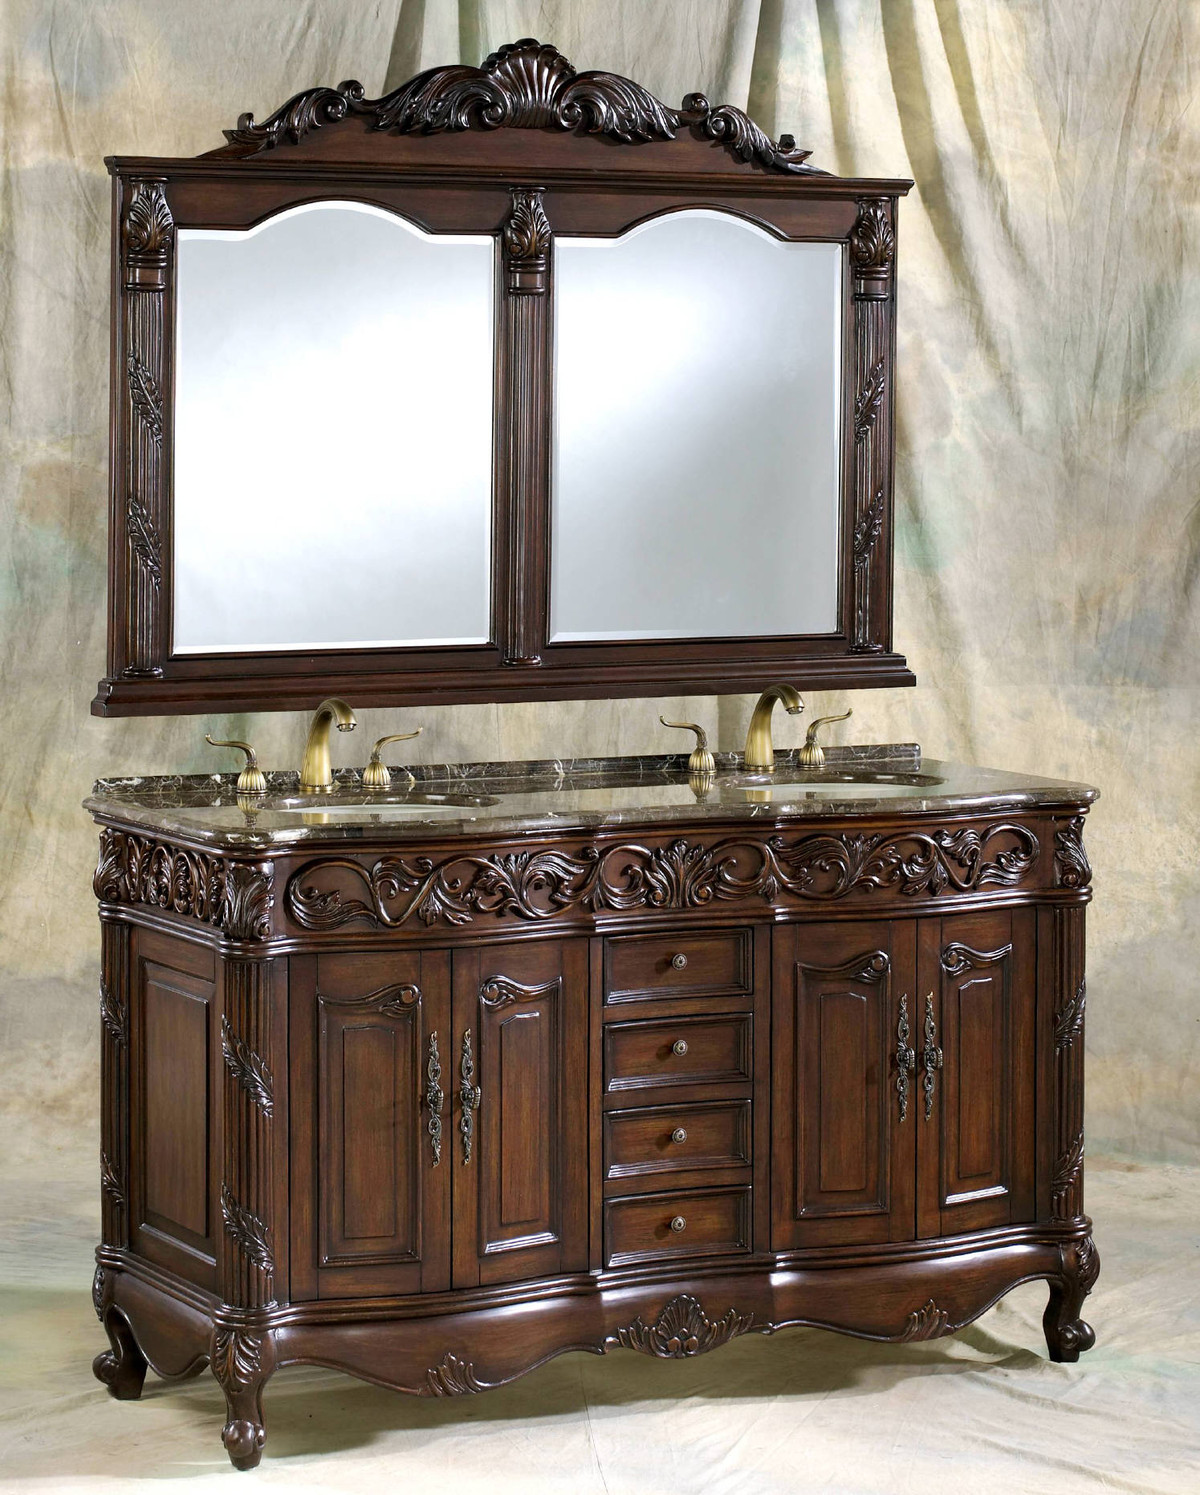 """60"""" Adelina Antique Style Double Sink Bathroom Vanity in Walnut Finish with Coral Brown Granite Countertop and Mirror Option"""